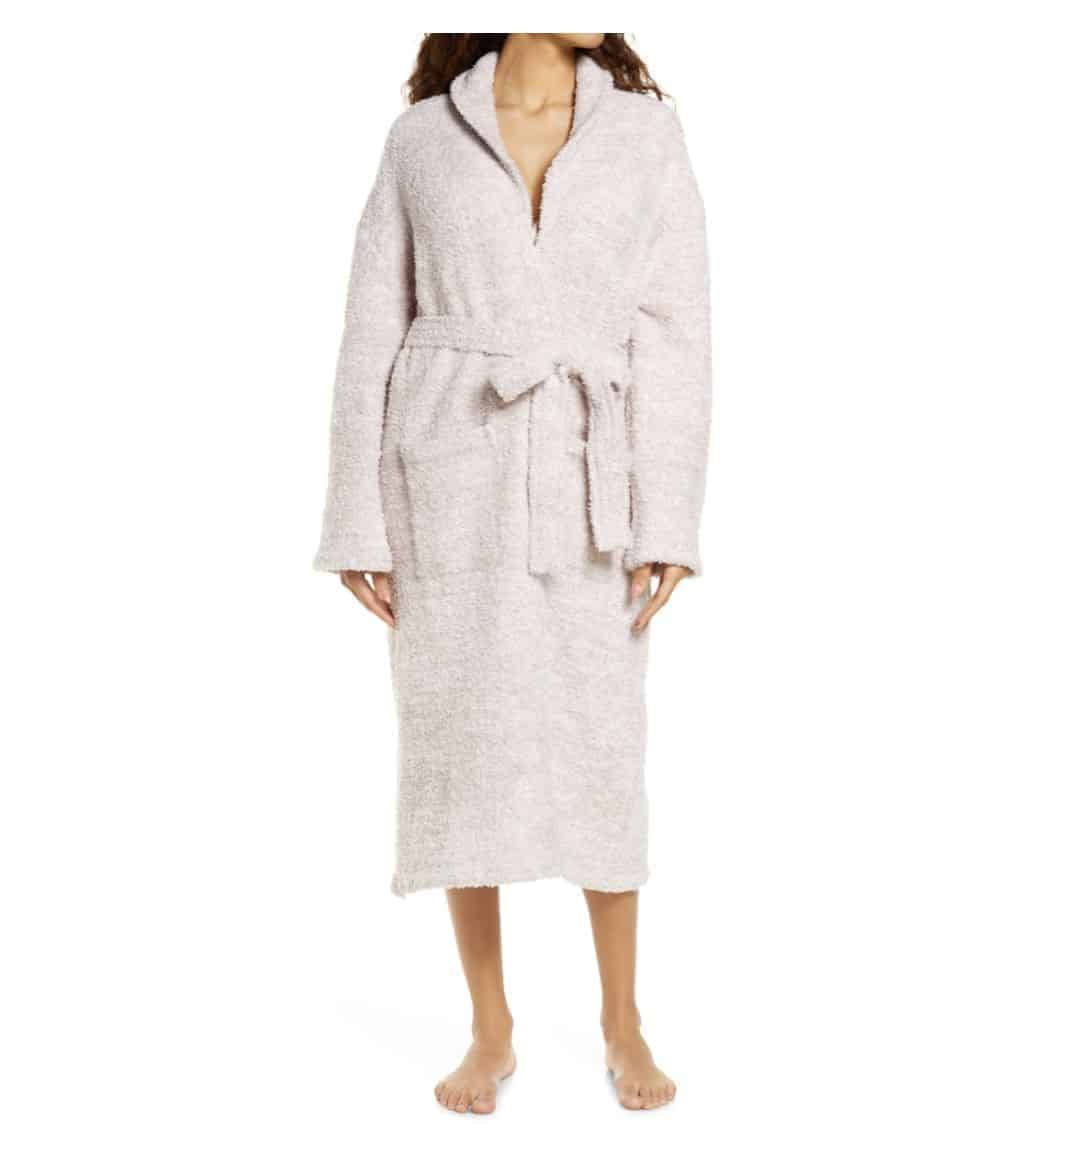 cozy-robe-gift-ideas-for-mothers-day